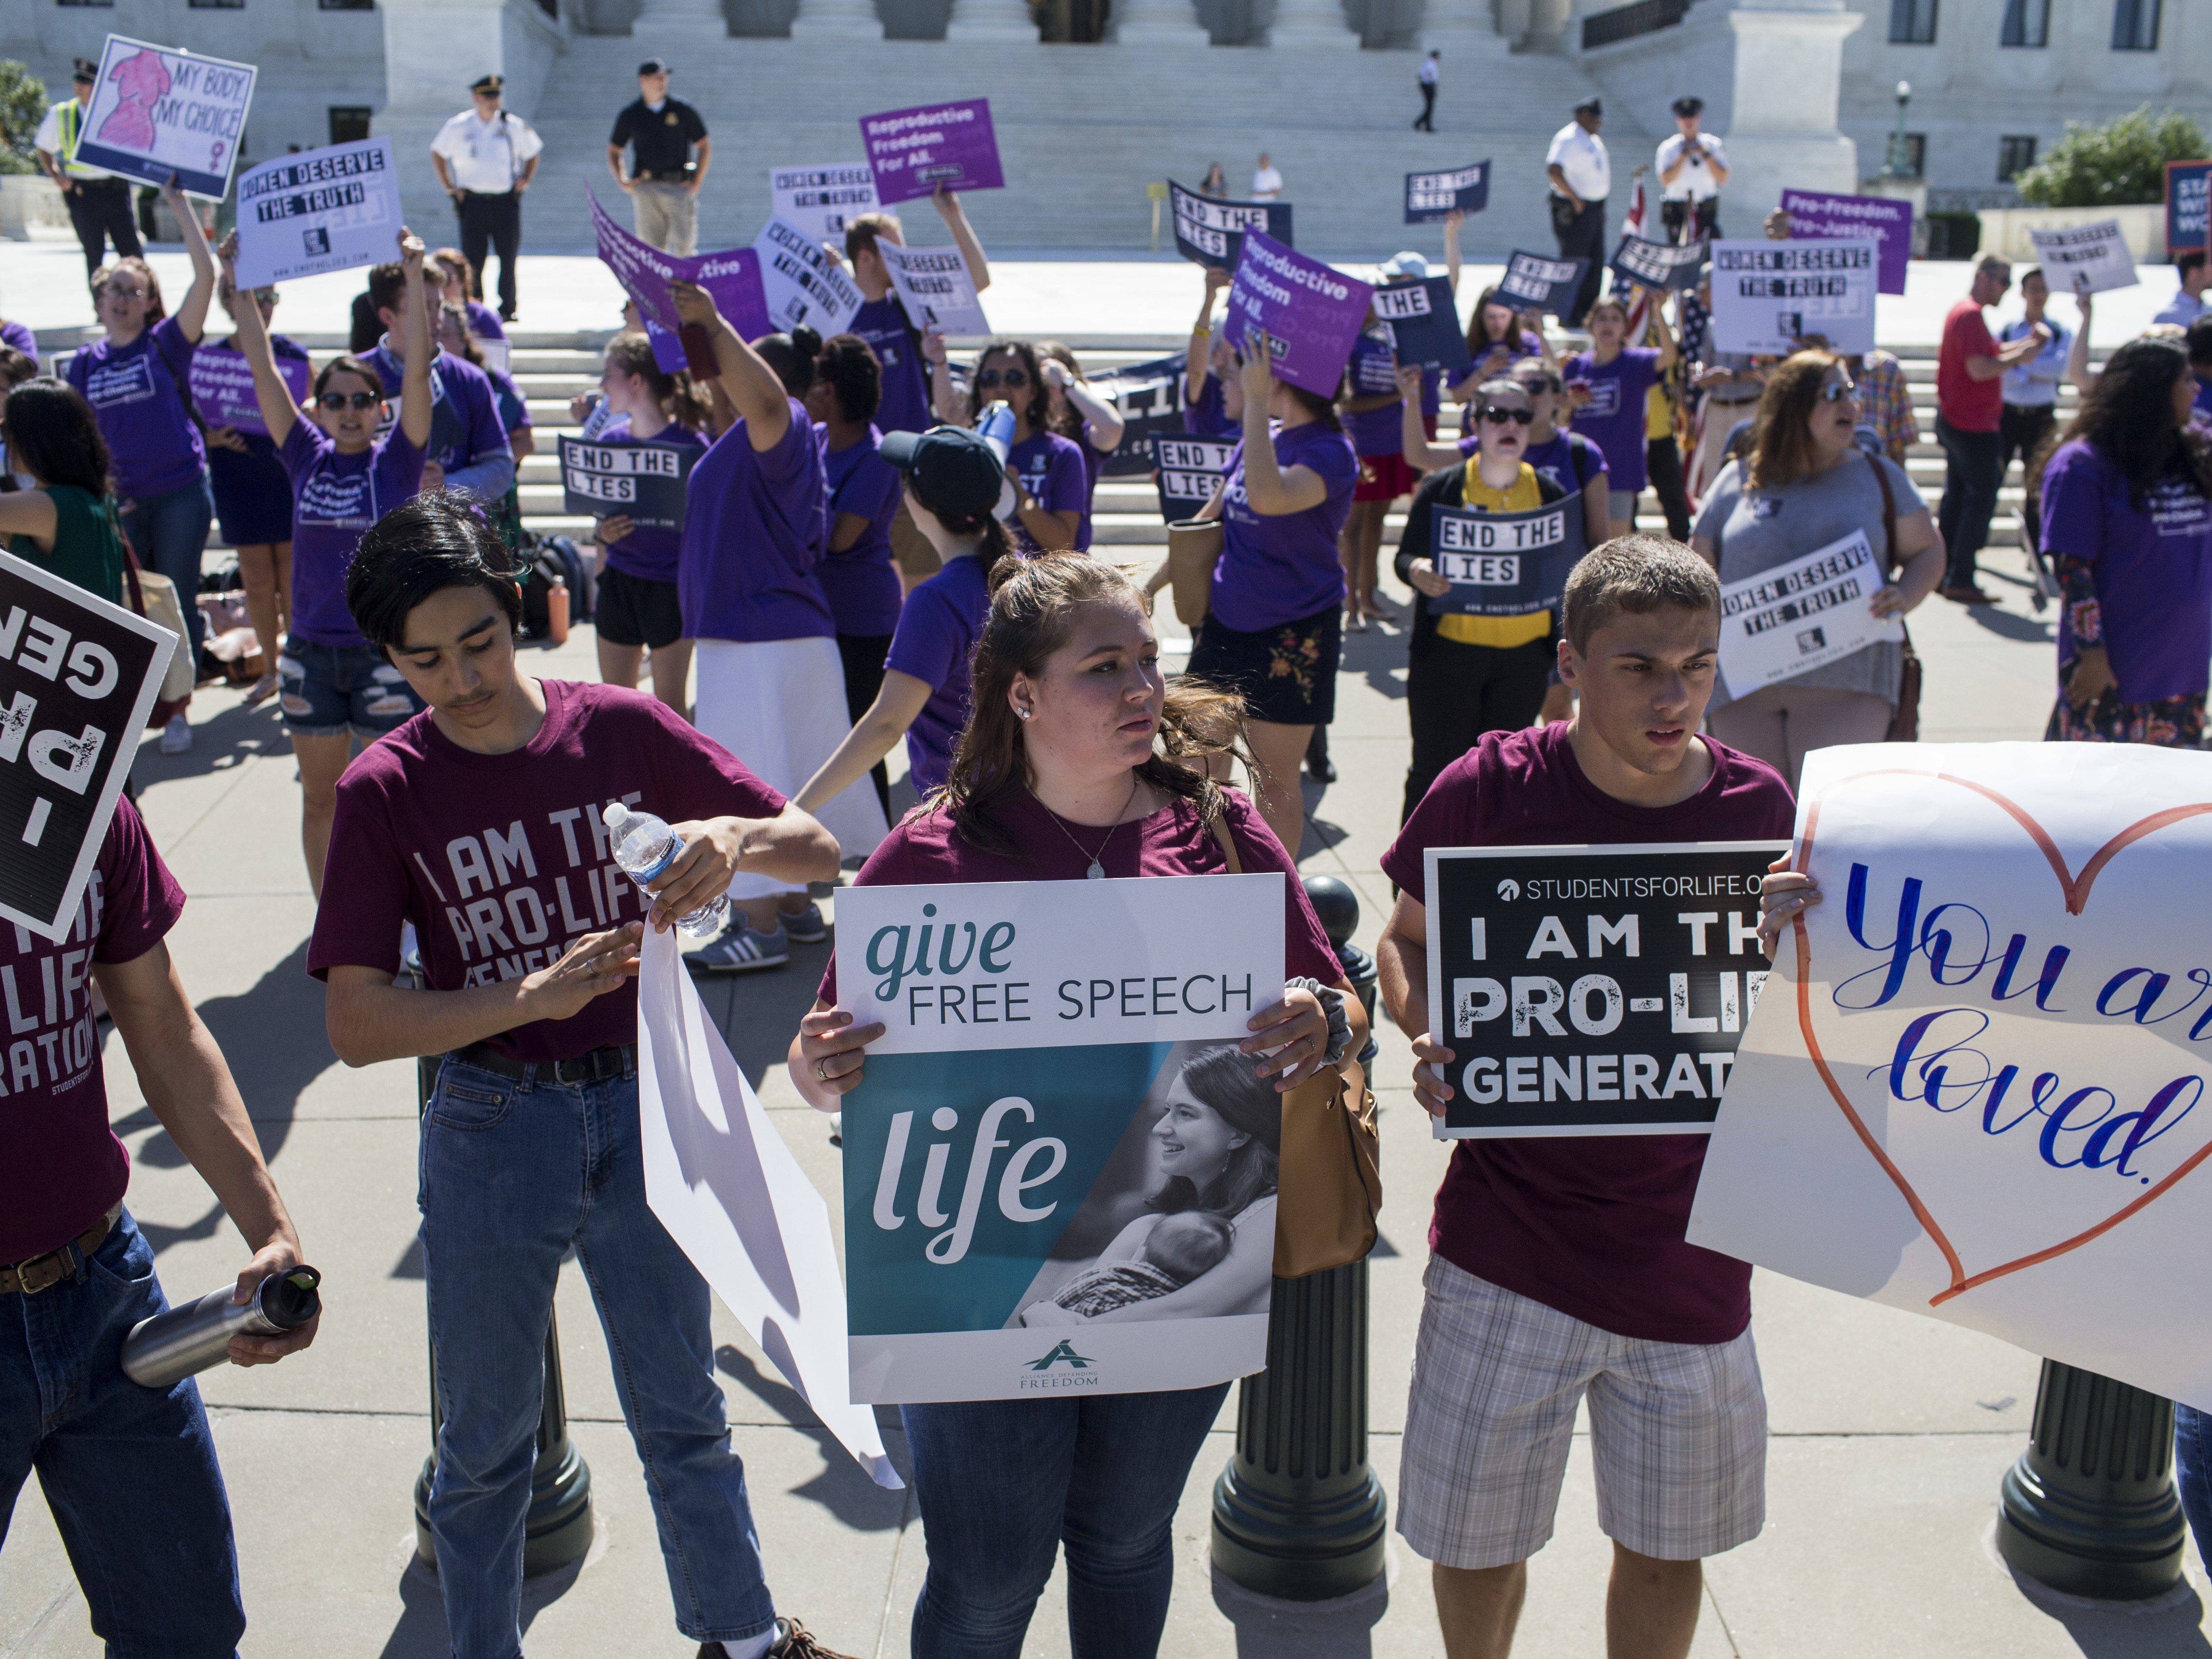 Abortion and anti-abortion rights groups rally at the Supreme Court on Monday. Almost as soon as Justice Anthony Kennedy's retirement was announced, several anti-abortion rights groups began their campaigns to influence the pick for his successor.